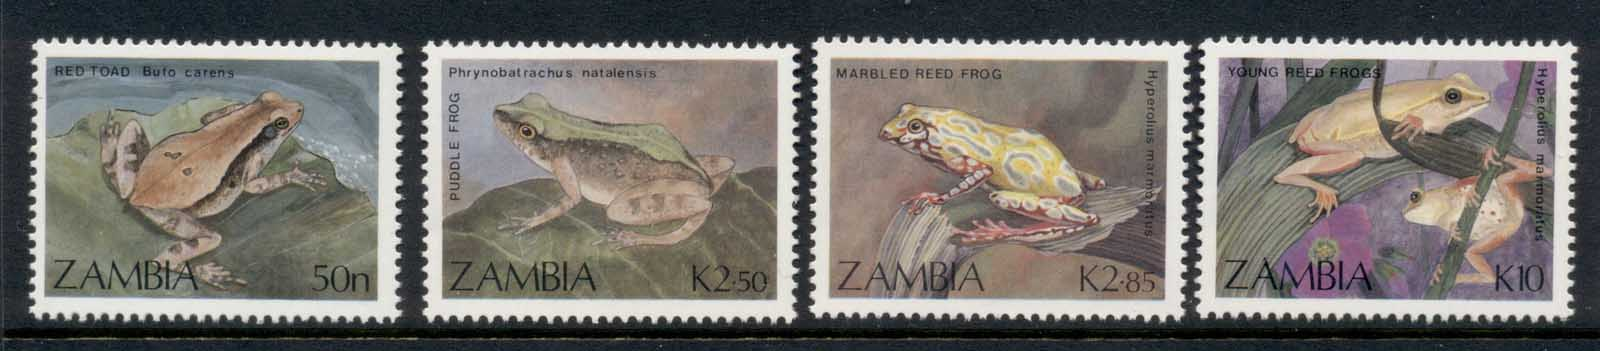 Zambia 1989 Frogs & Toads MUH